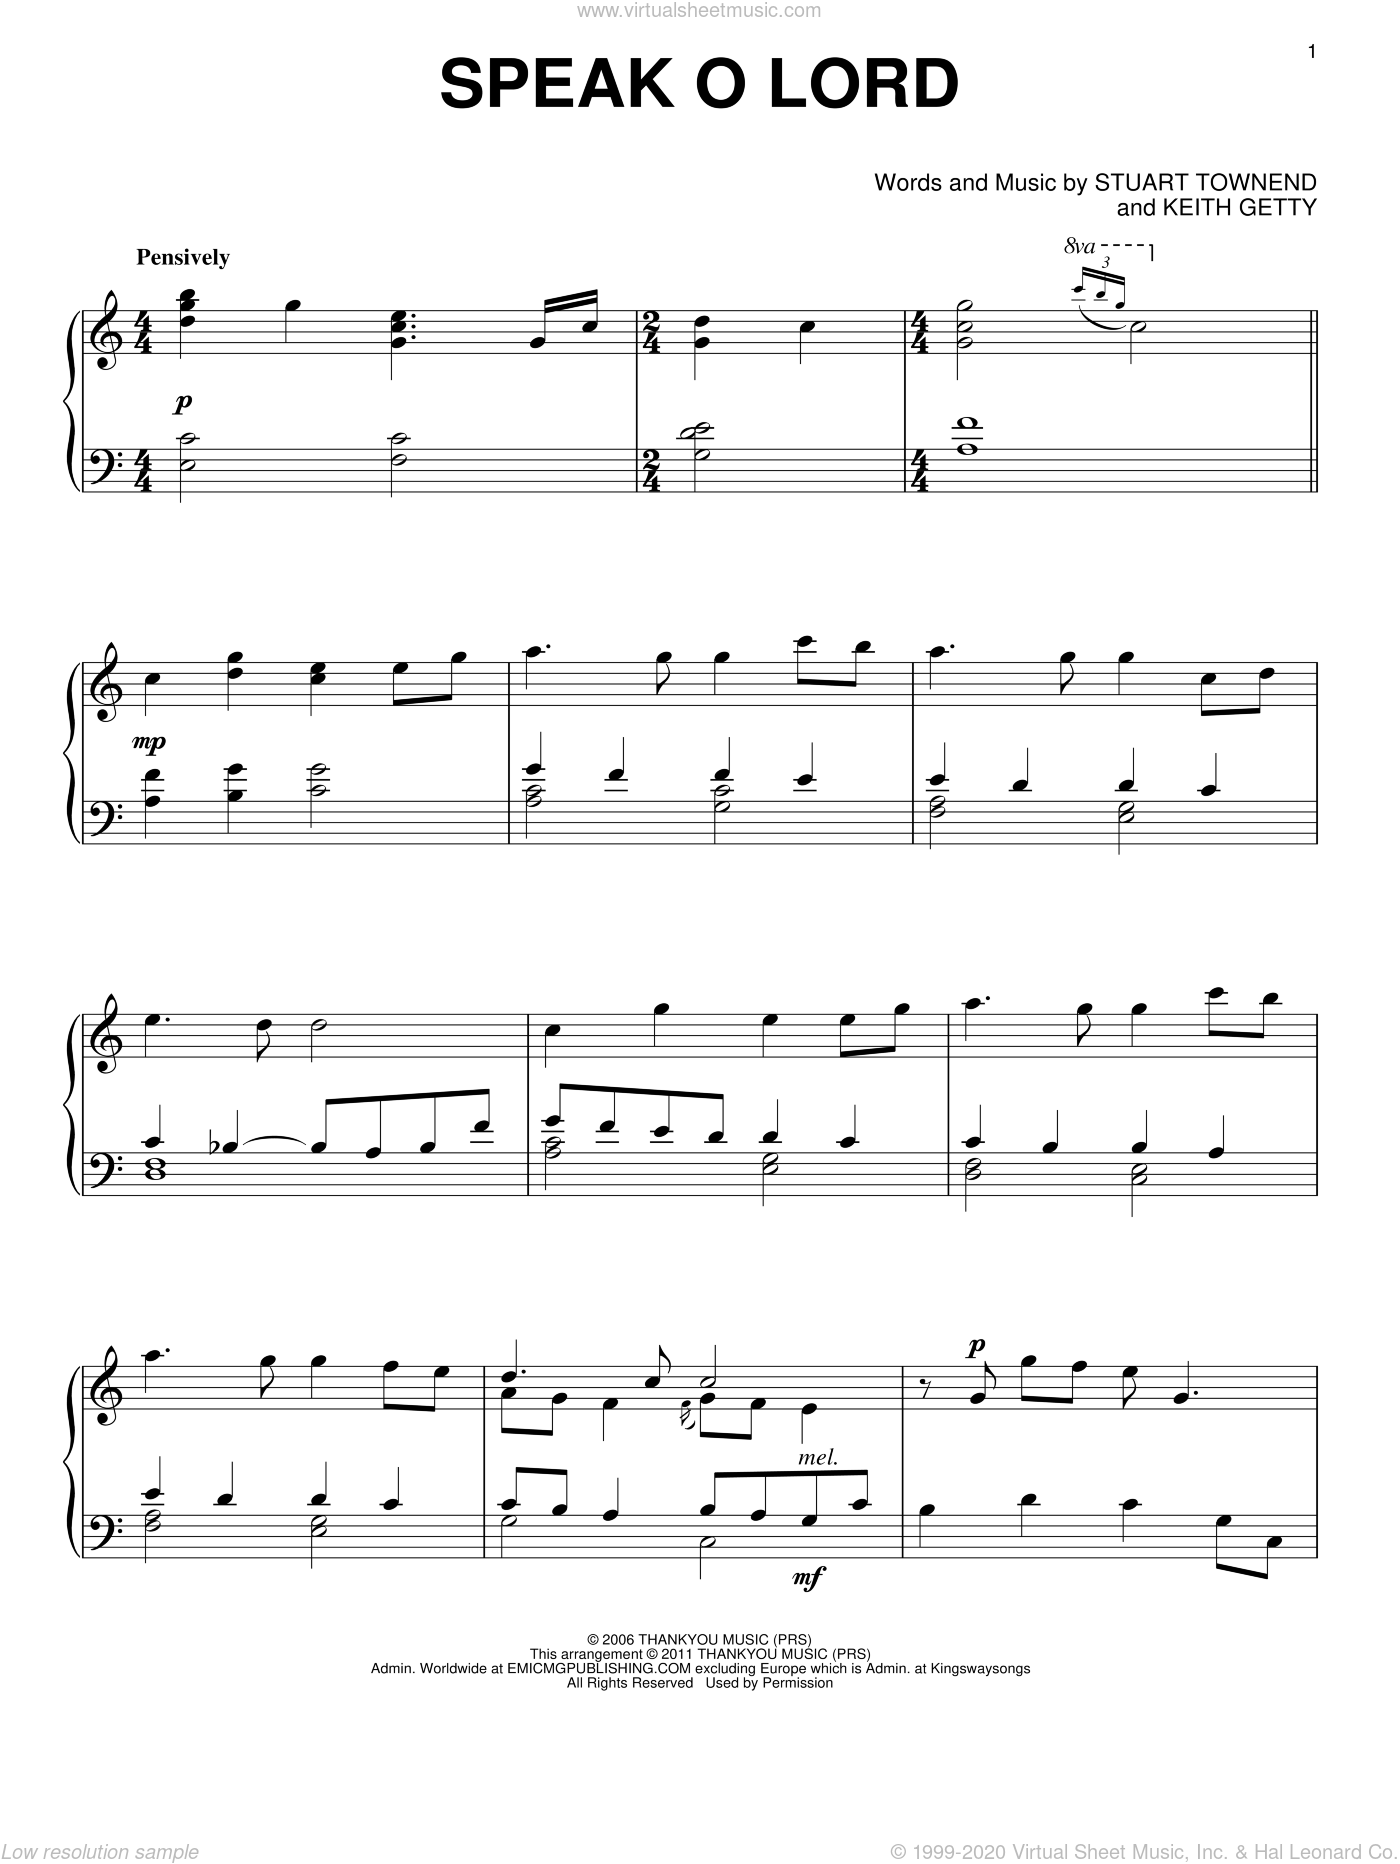 Speak O Lord sheet music for piano solo by Stuart Townend and Keith Getty, intermediate skill level